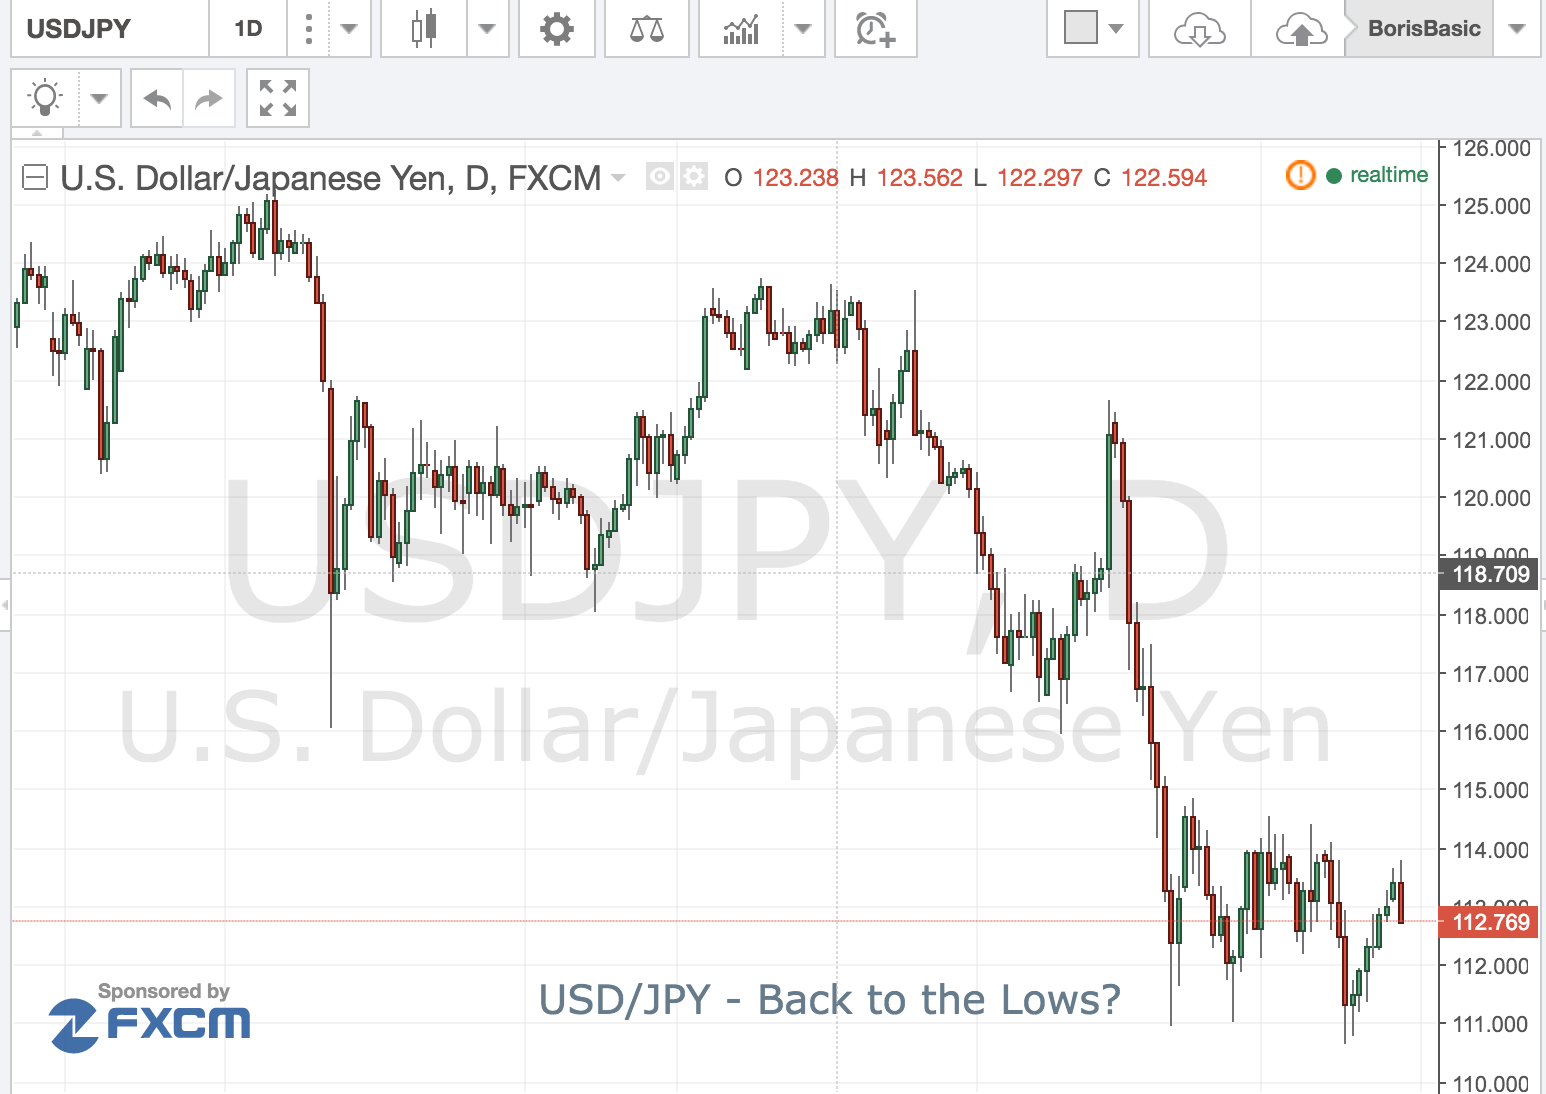 USDJPY – Back to the Lows?